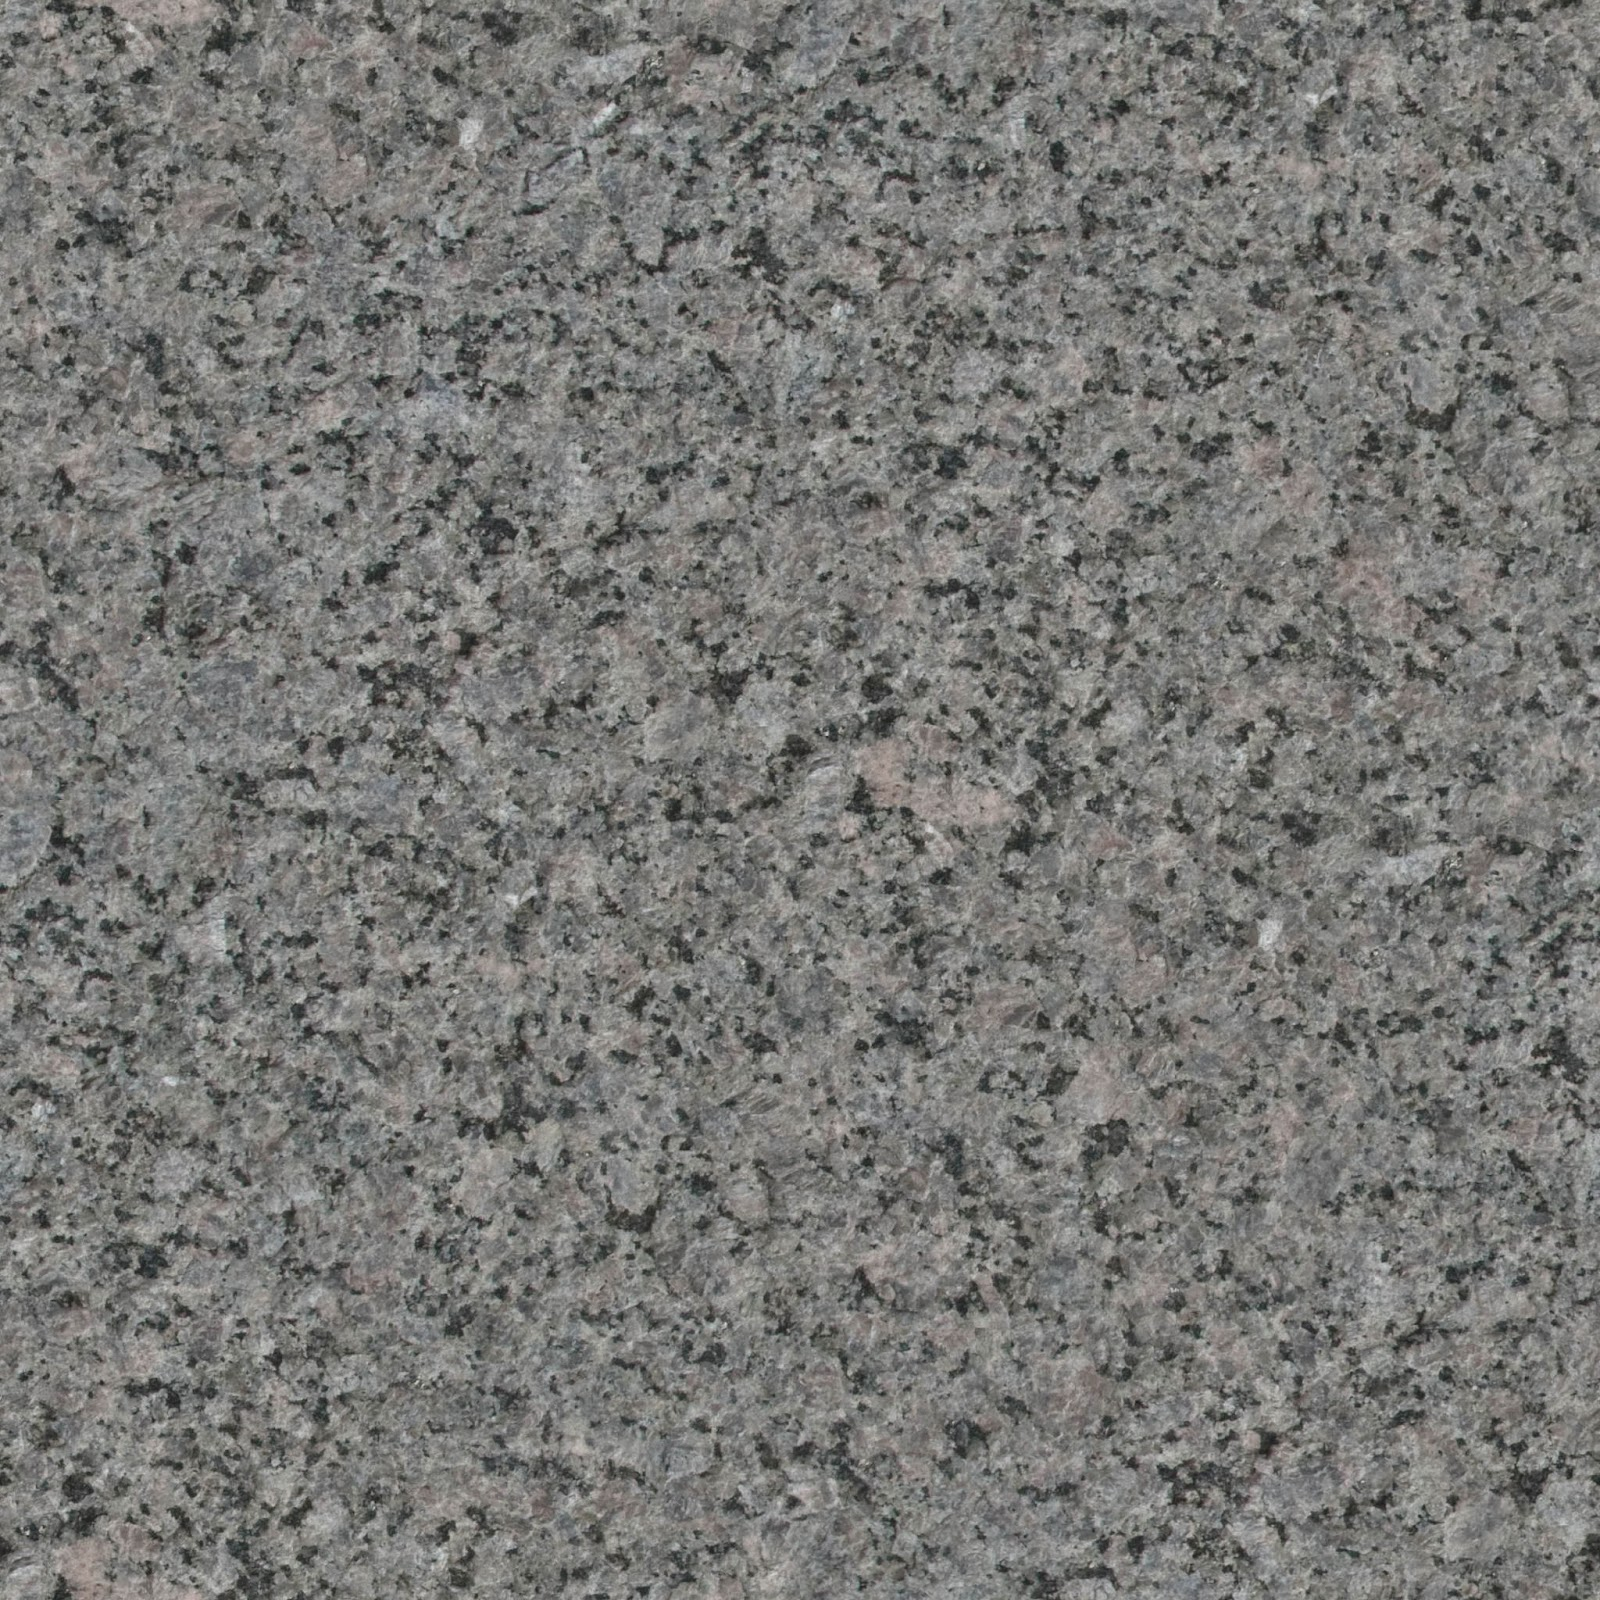 Grey Speckled Carpet Images Couples Apartment Colour